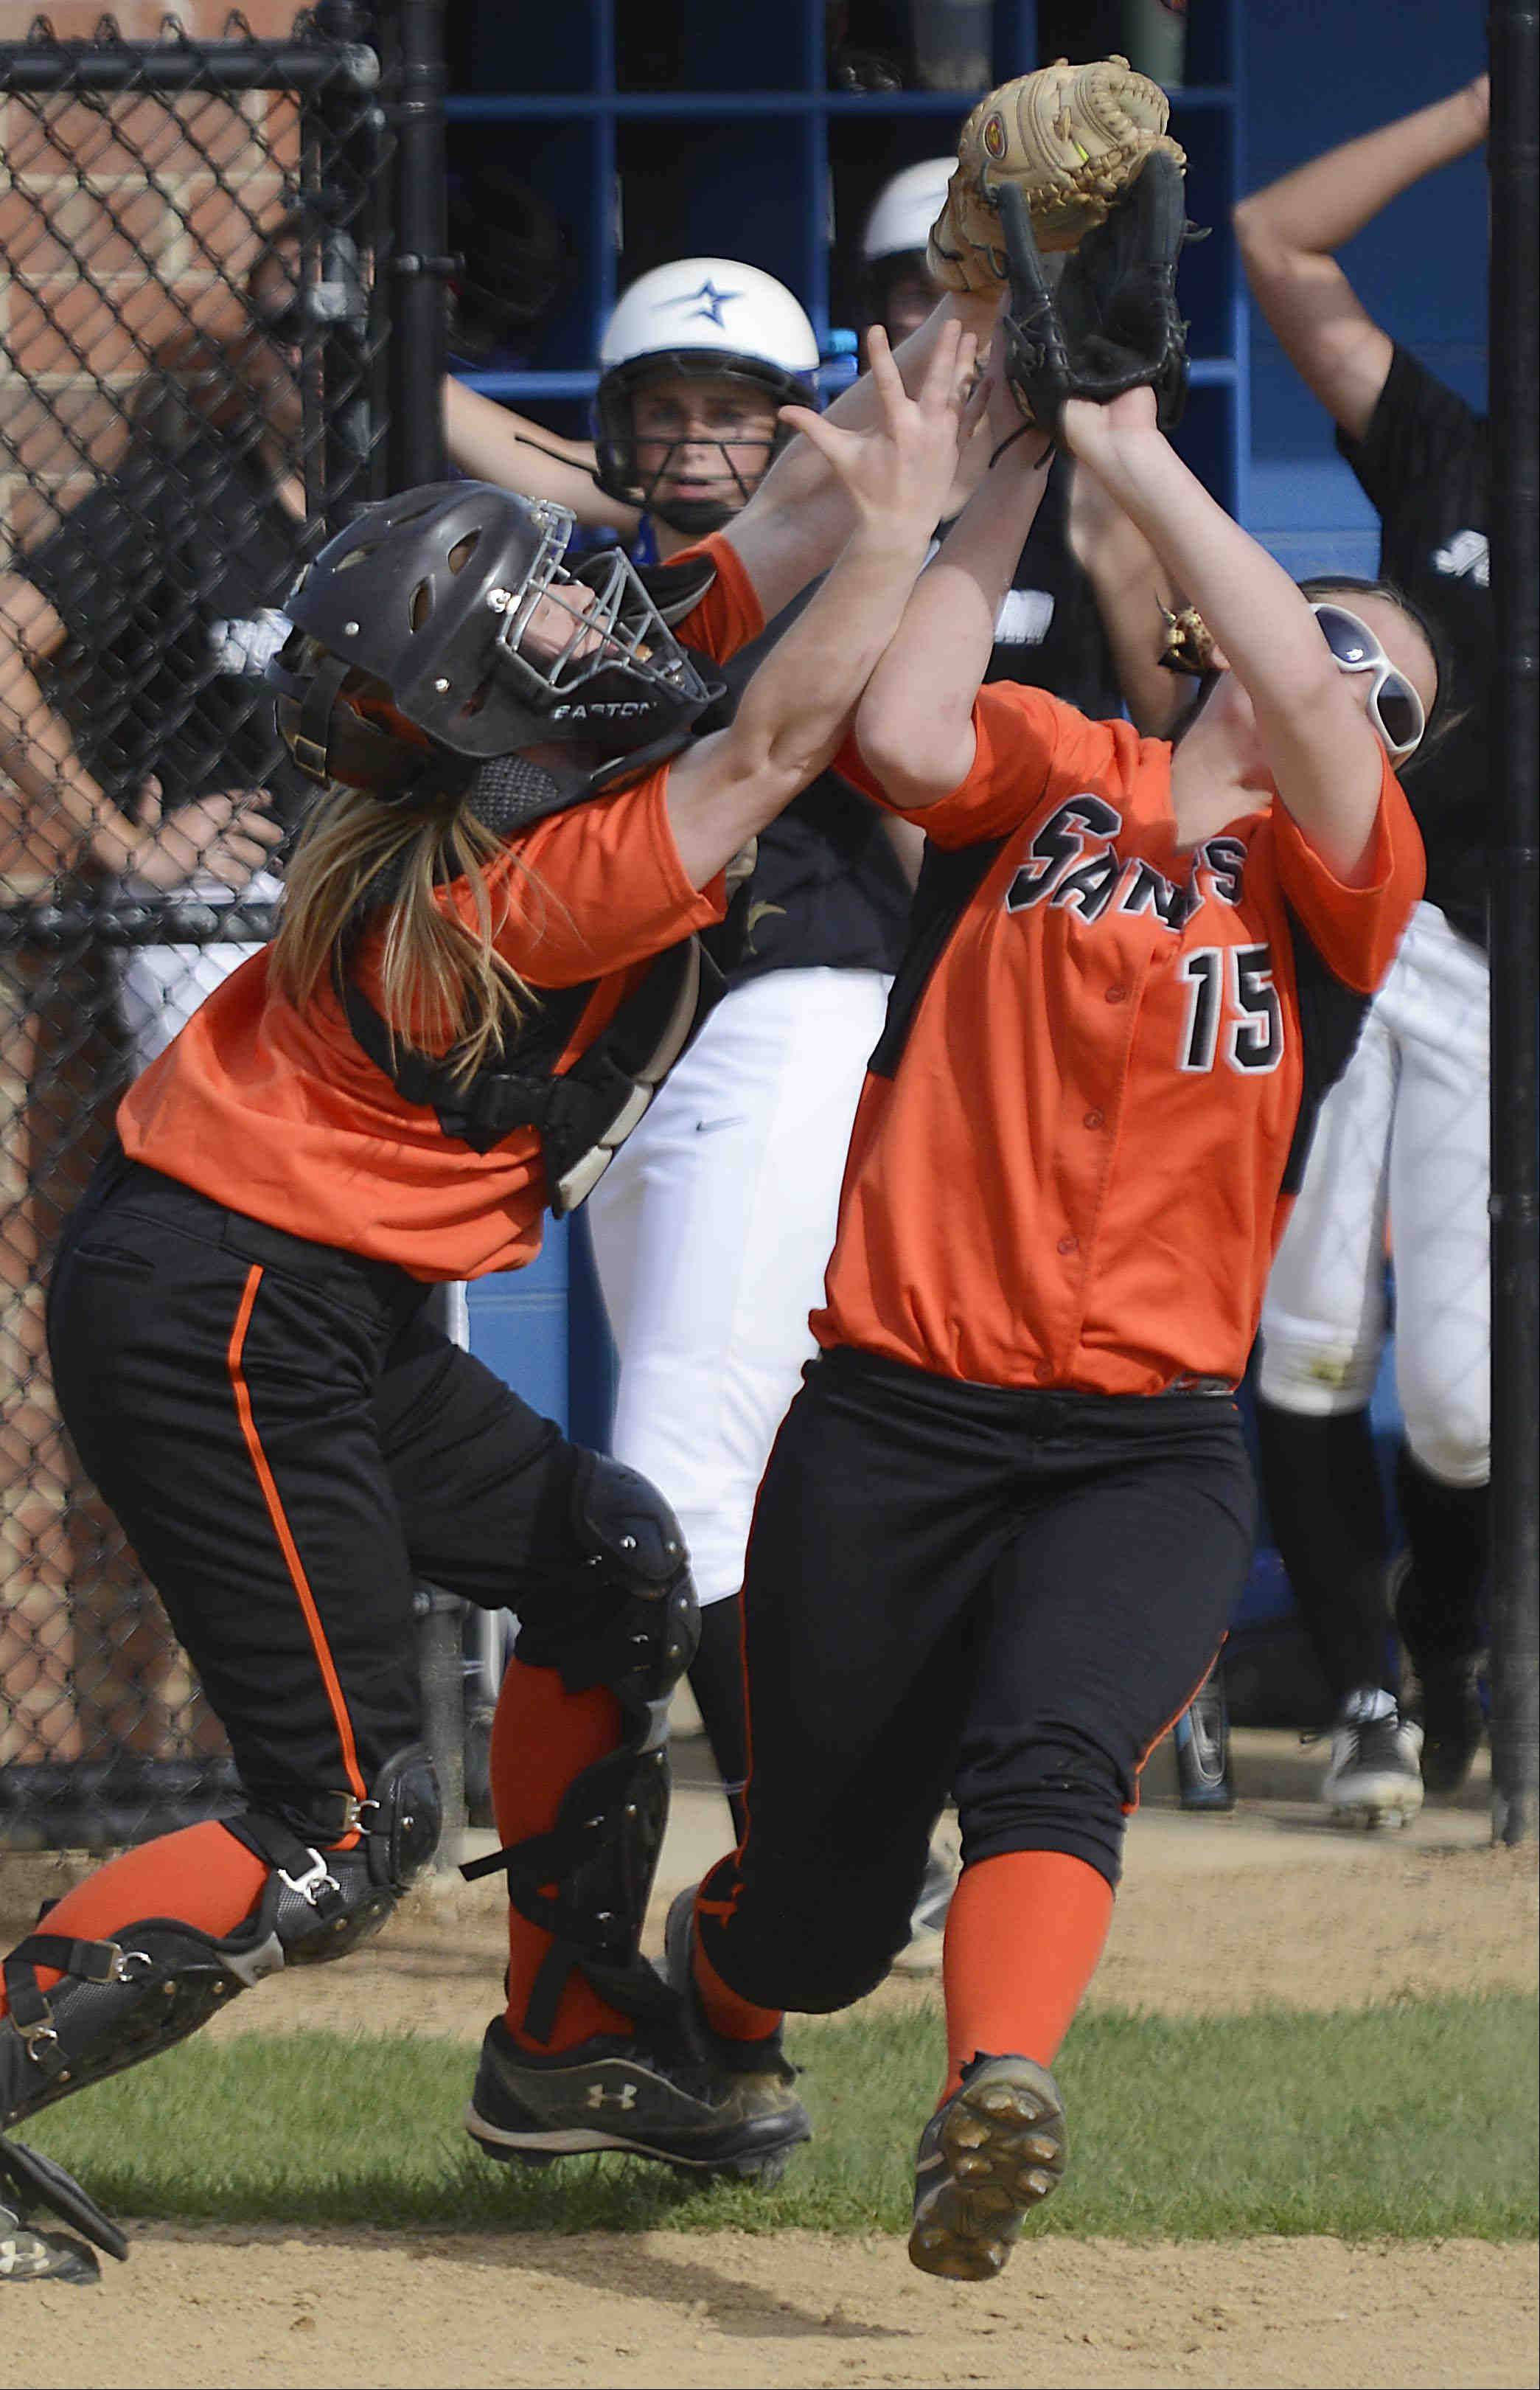 St. Charles East catcher Shelby Holtz and and third baseman Alex Latoria collide as they attempt to catch a pop up by St. Charles North's Alexandra Millett Monday. Holtz caught the ball for the second out of the second inning.